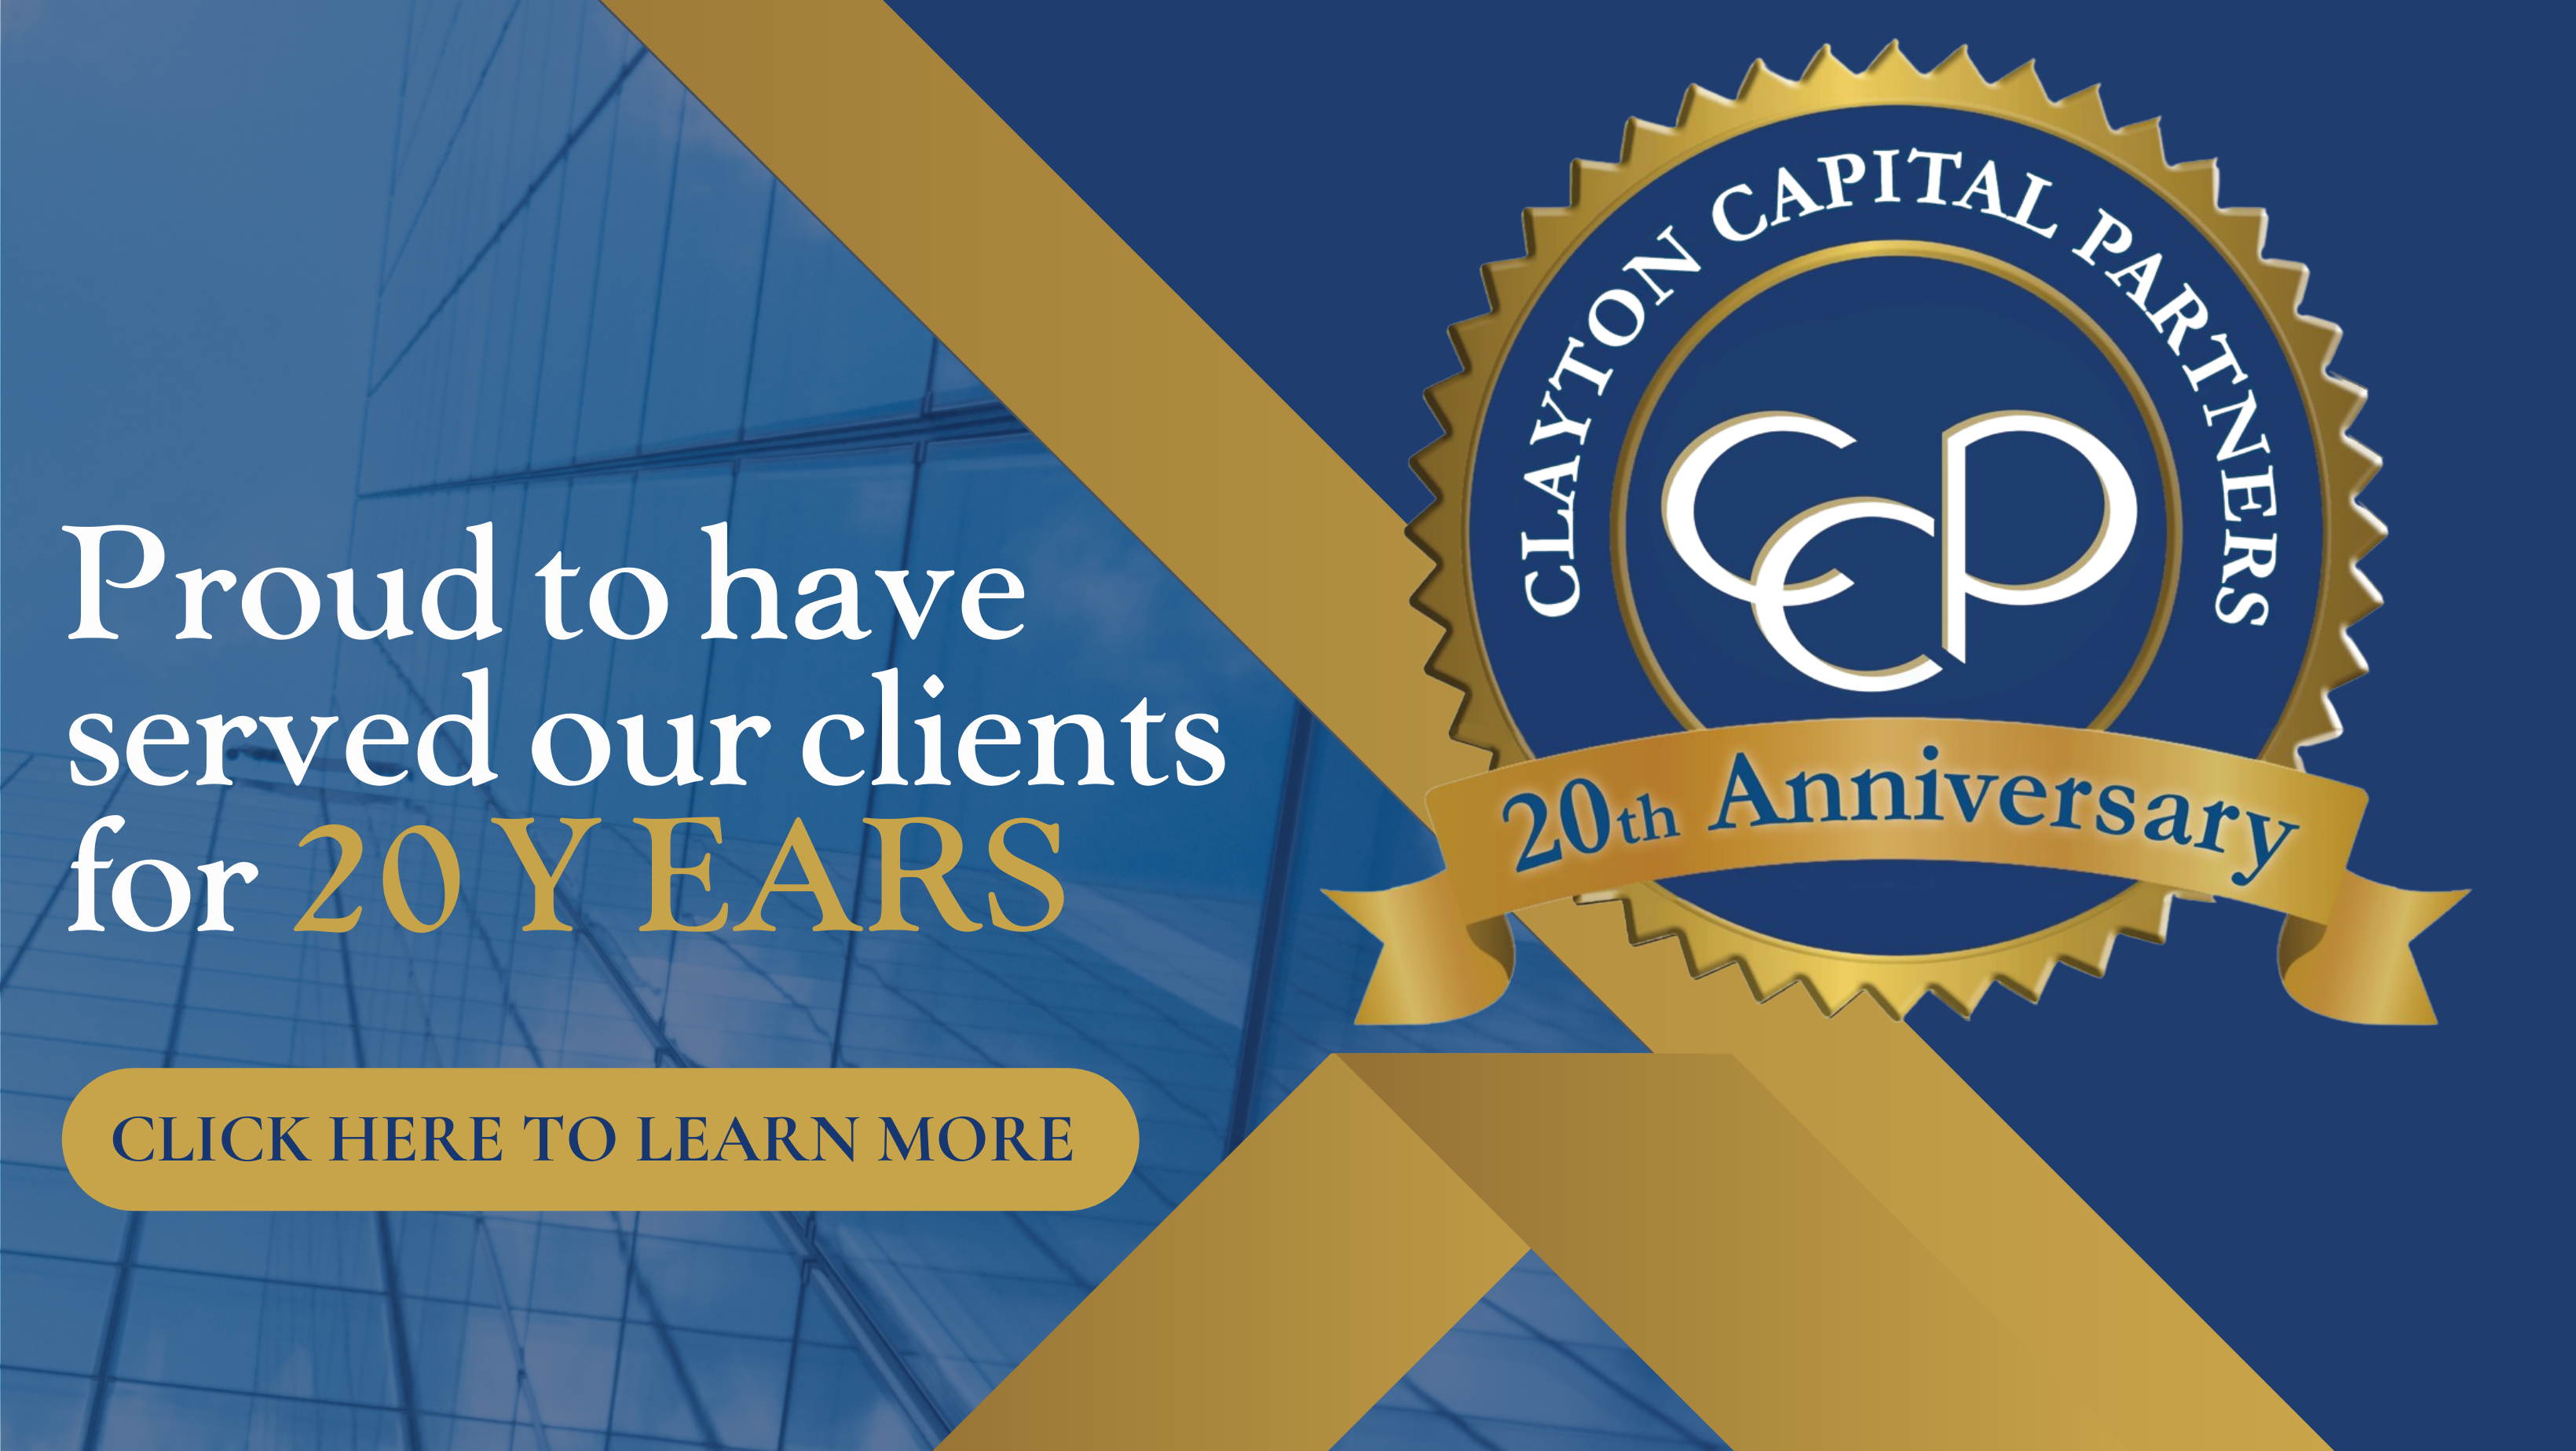 Clayton Capital Partners is Proud to Celebrate 20th Anniversary